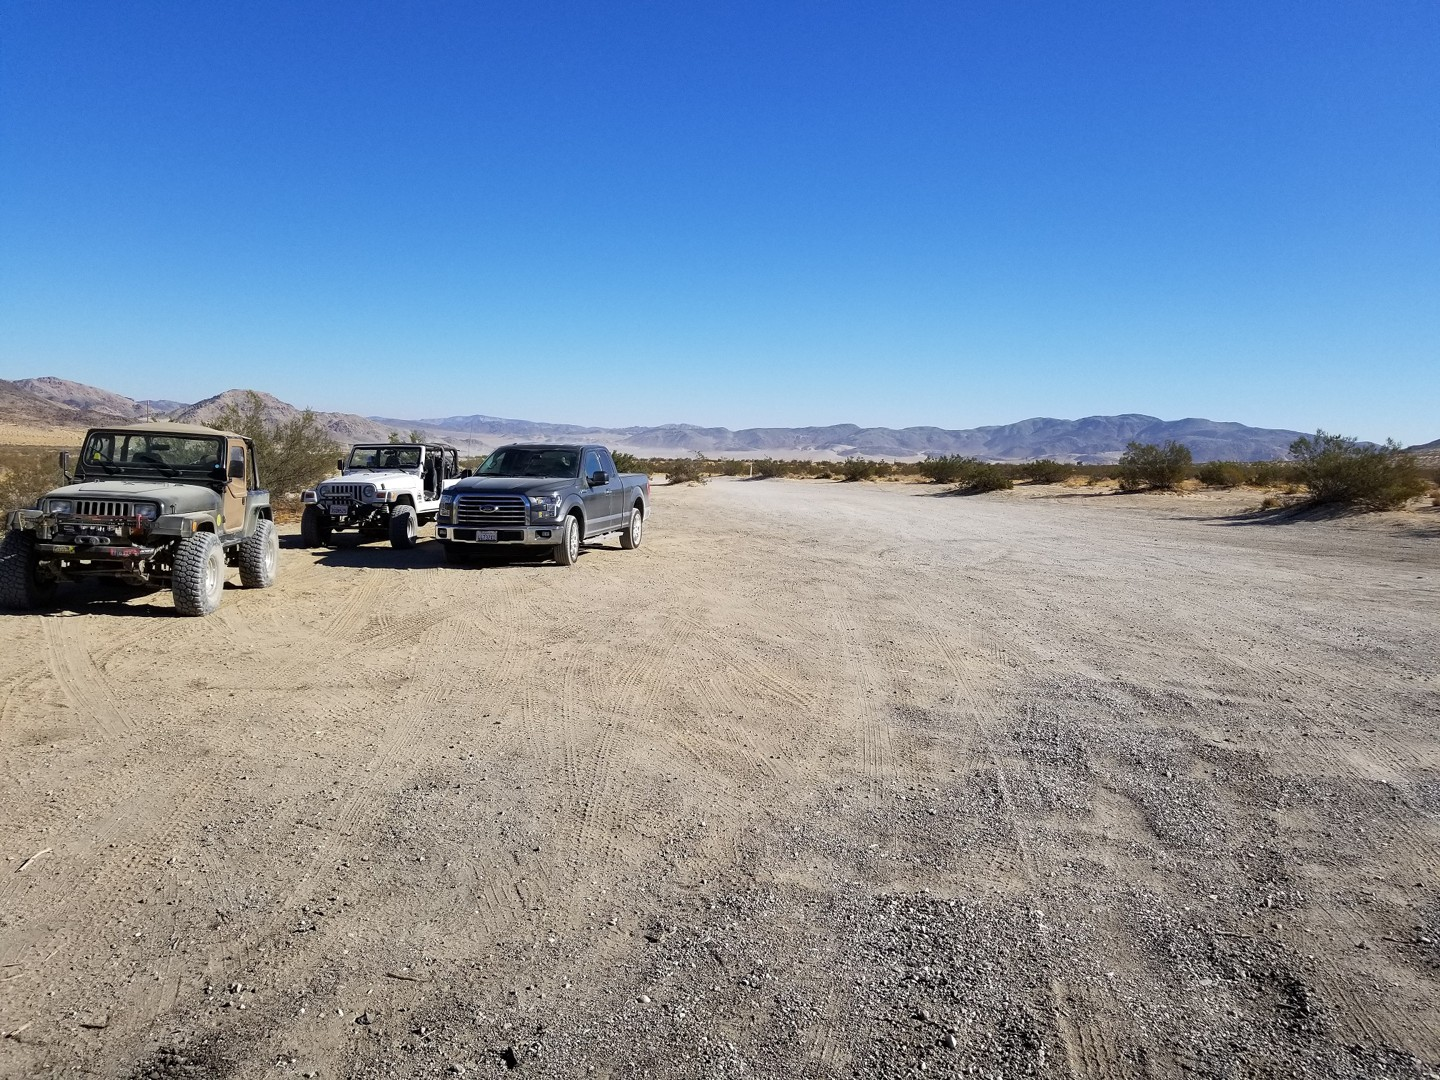 Boone Road - Johnson Valley - Waypoint 1: Boone Road and Old Women Springs Road